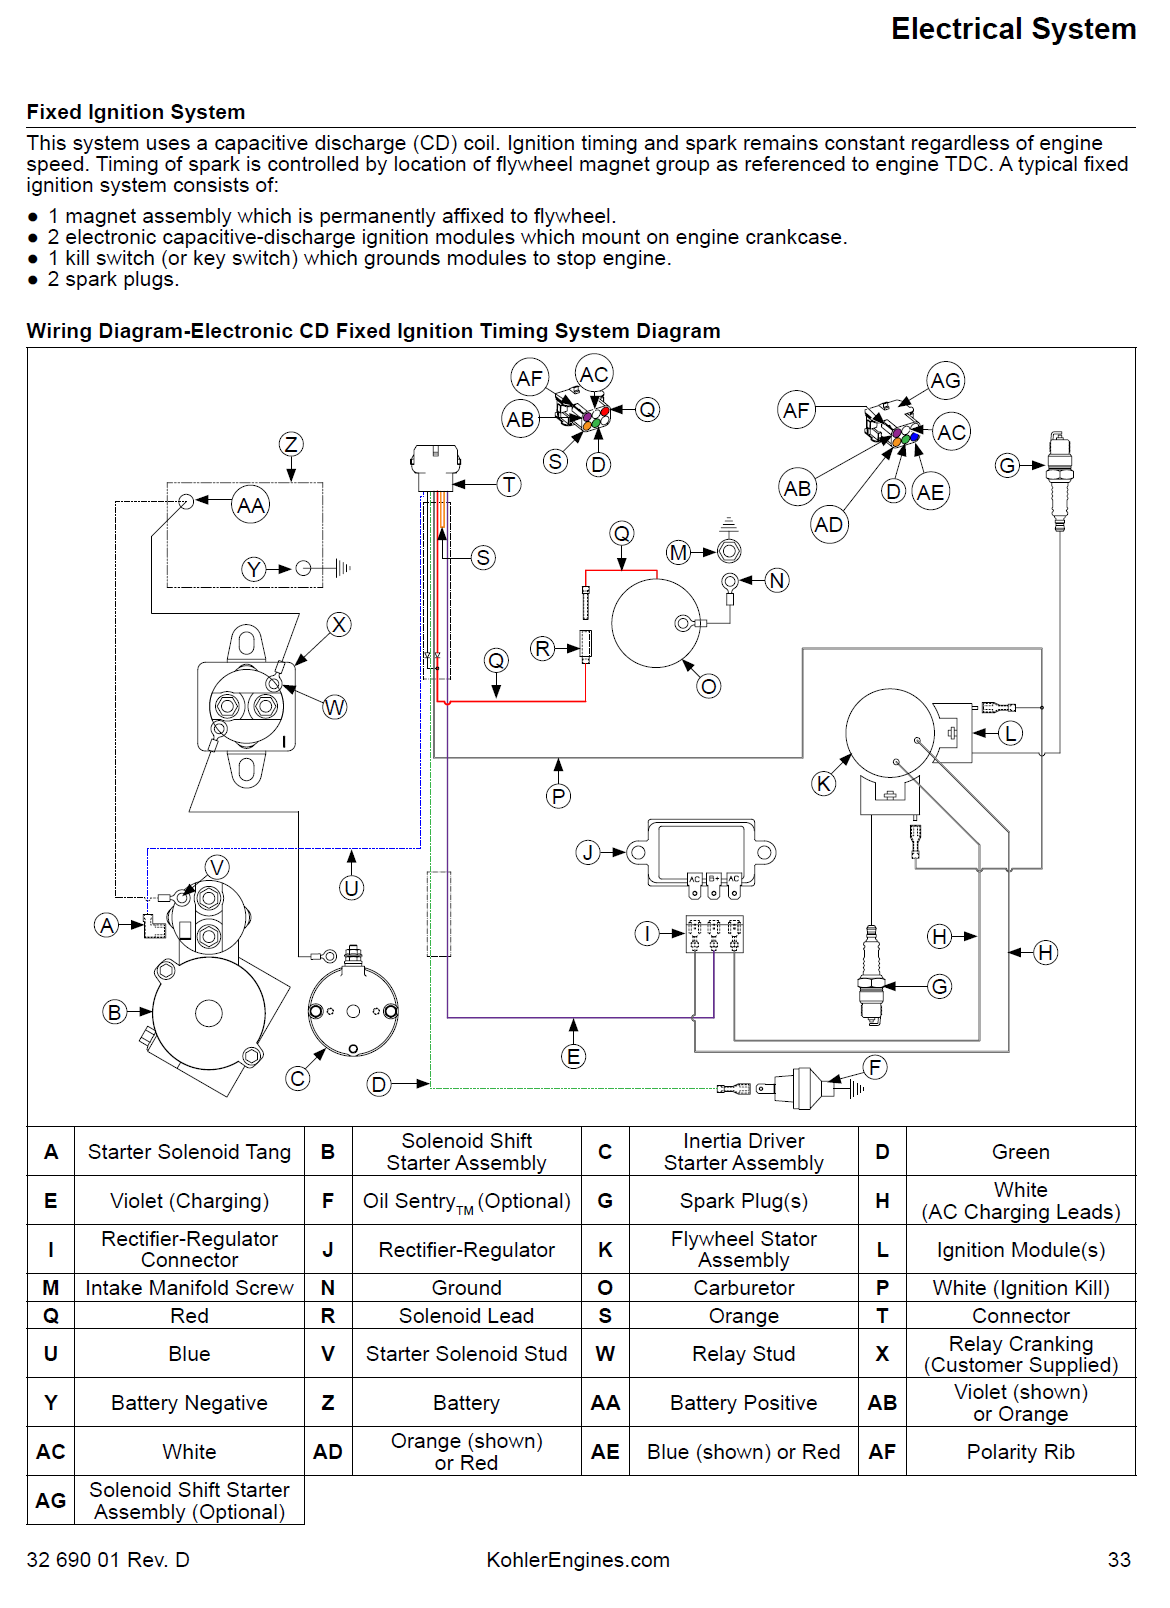 20 Hp Briggs Vanguard Engine Parts Diagram Wiring - Diagrams